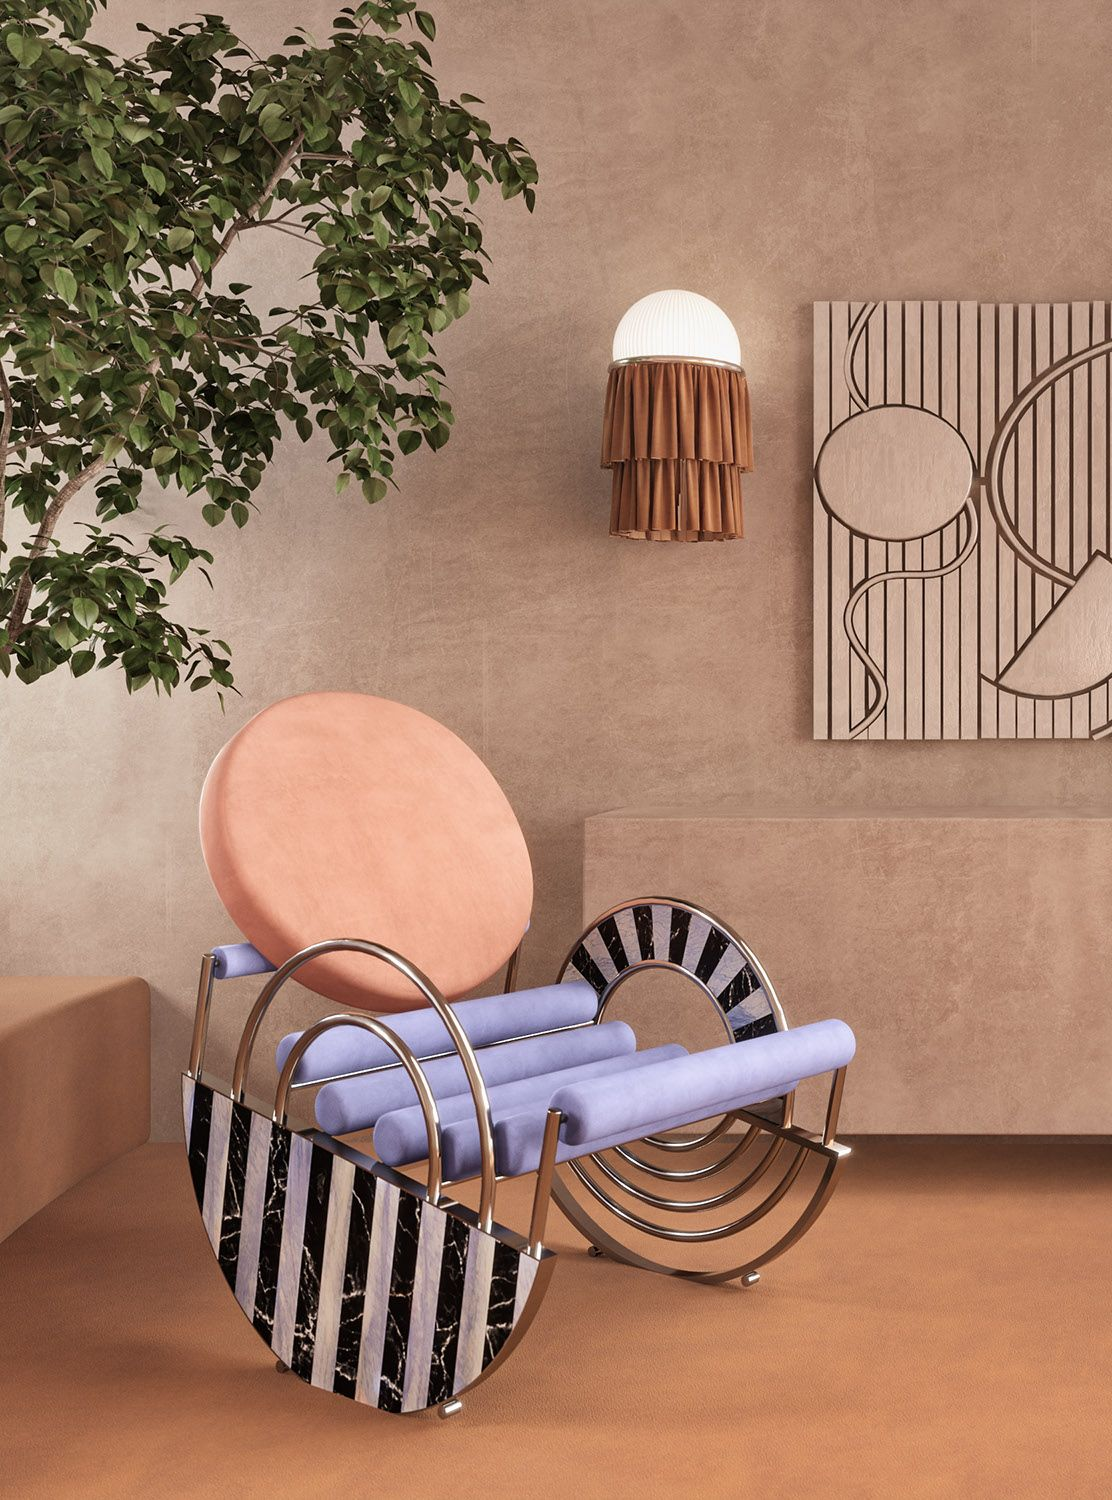 Interior trend: Sculptural furniture to give shape to the everyday life